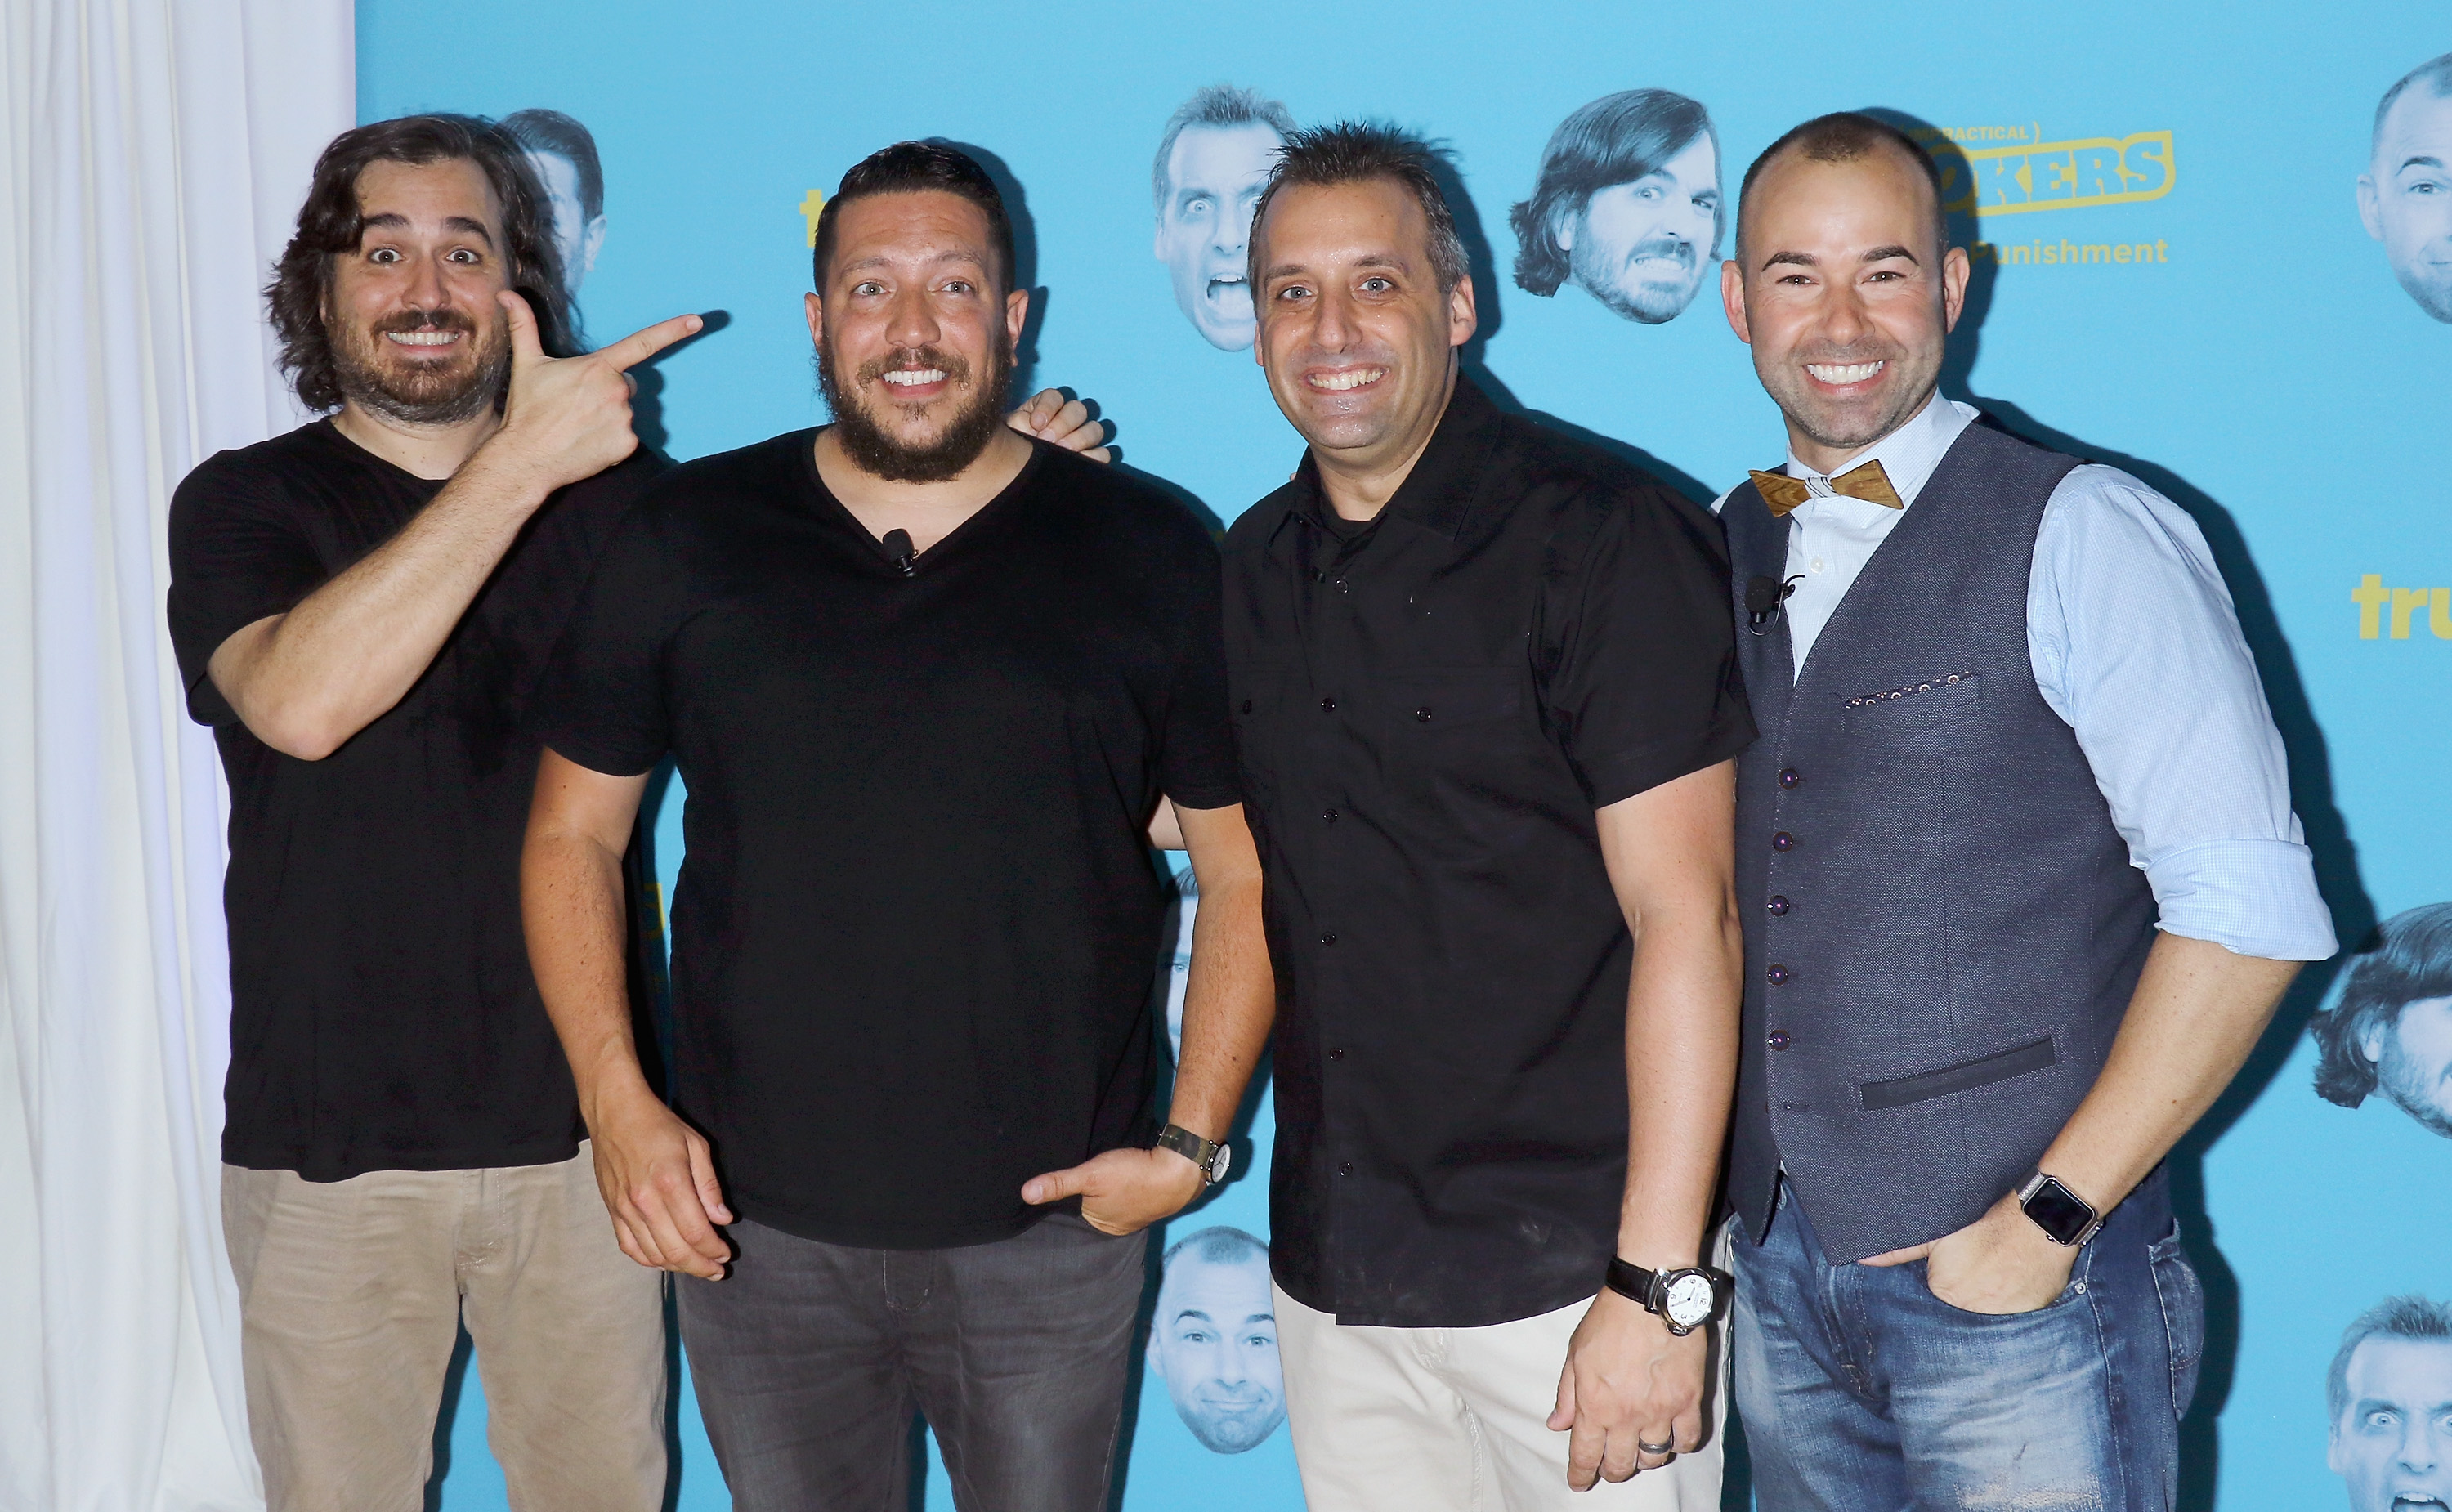 Joe Gatto Reveals Q Is His Biggest Competition On Impractical Jokers Find Out Why Exclusive In Touch Weekly He will then proceed to take a fat l on your grave. https www intouchweekly com posts joe gatto impractical jokers q 109517